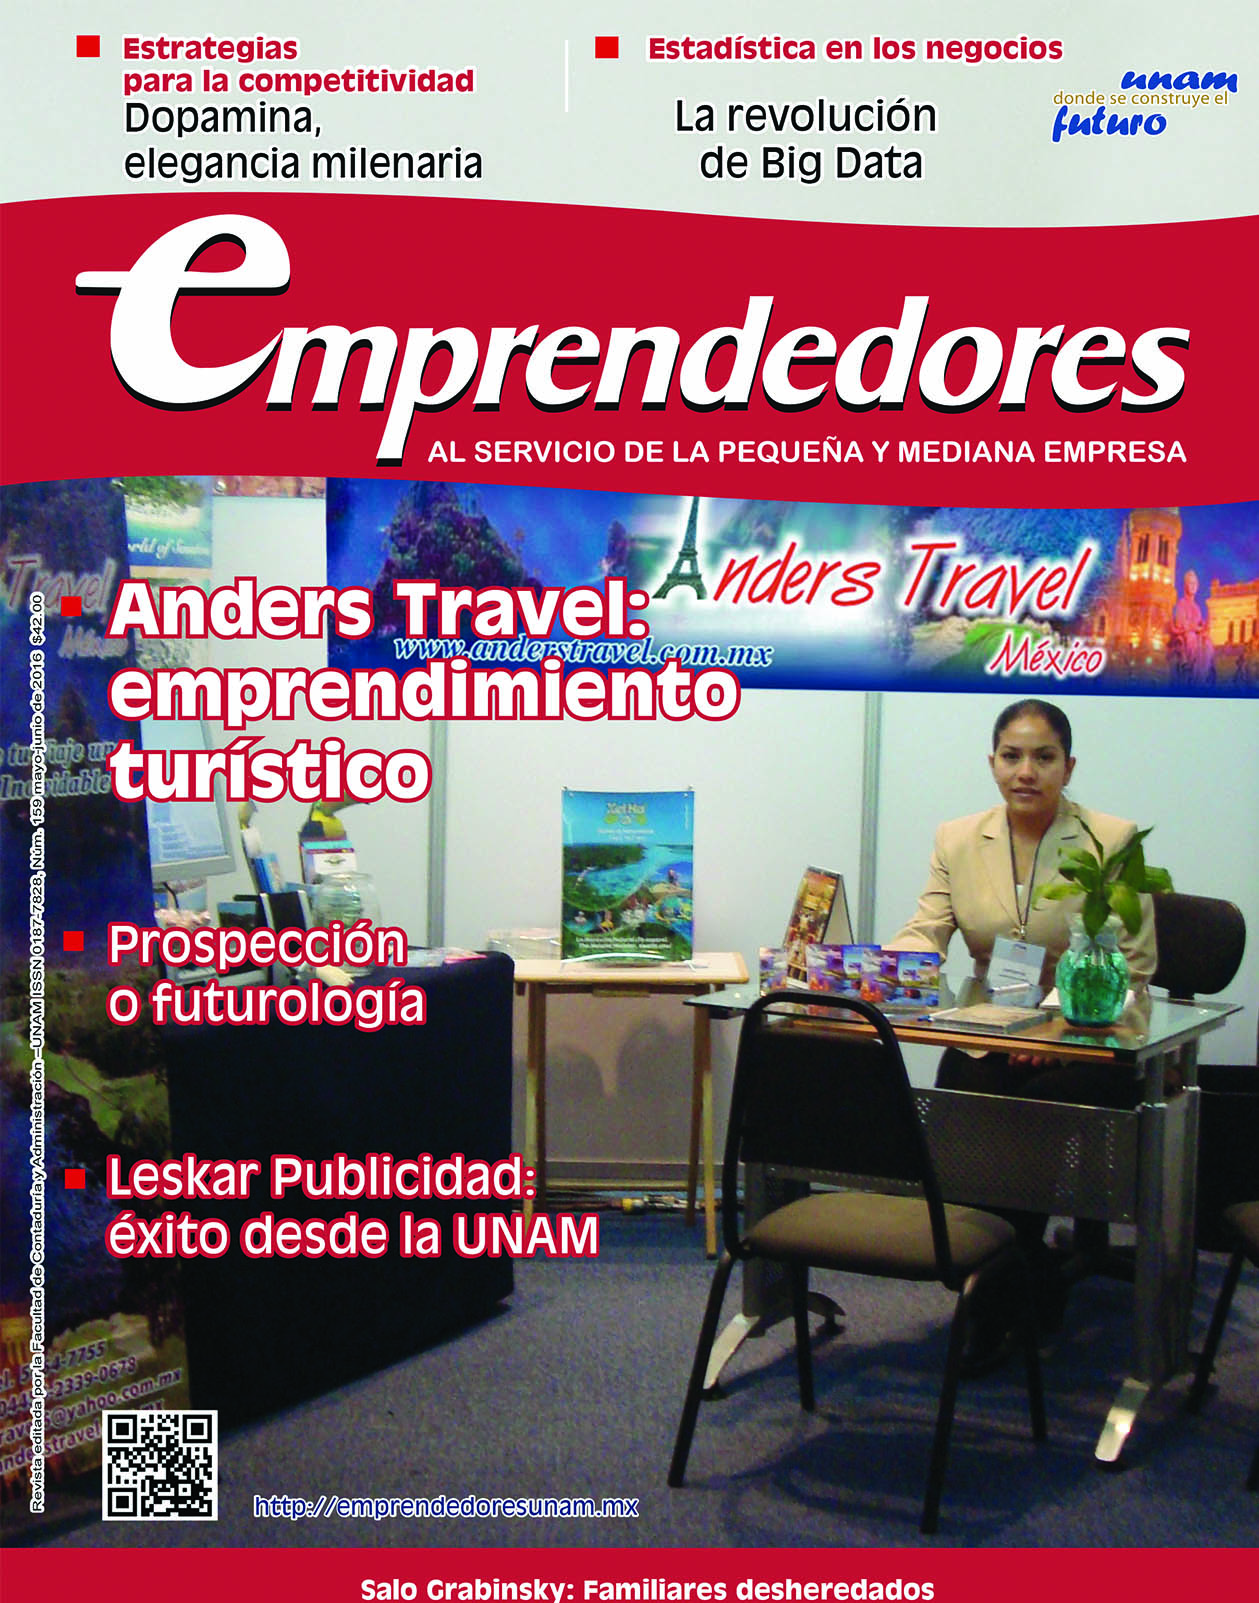 Anders Travel: emprendimiento turístico